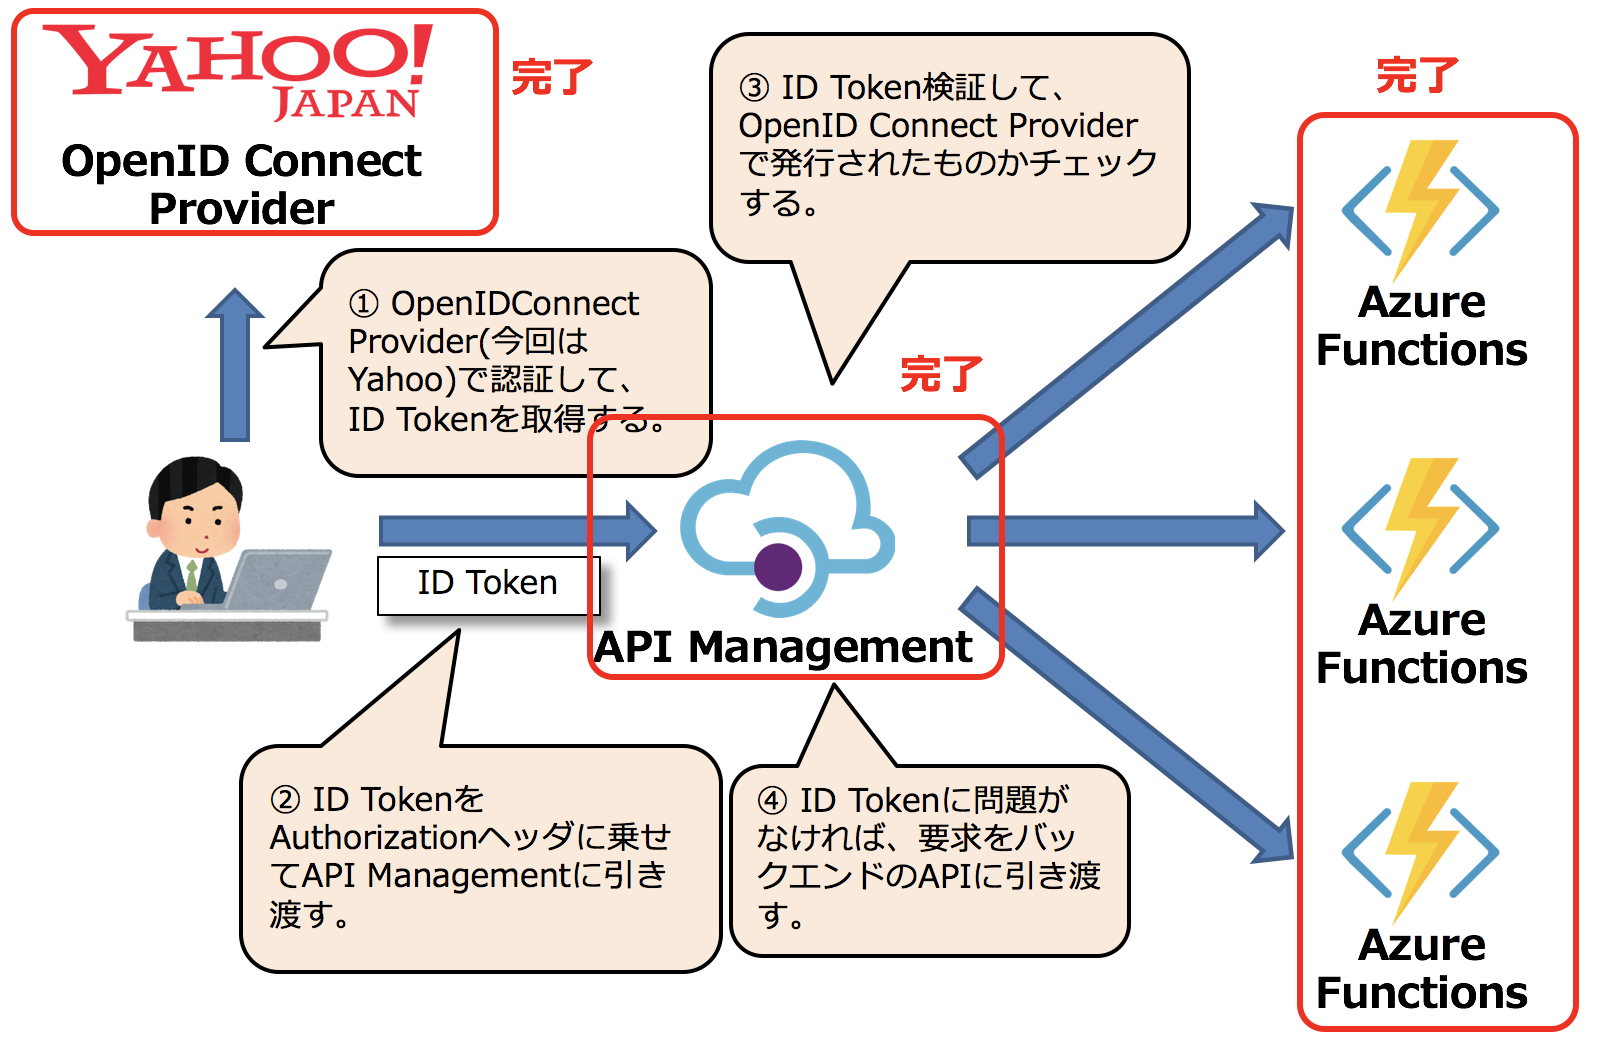 AzureのAPI Gateway(API Management)を用いてOpenID Connect Provider